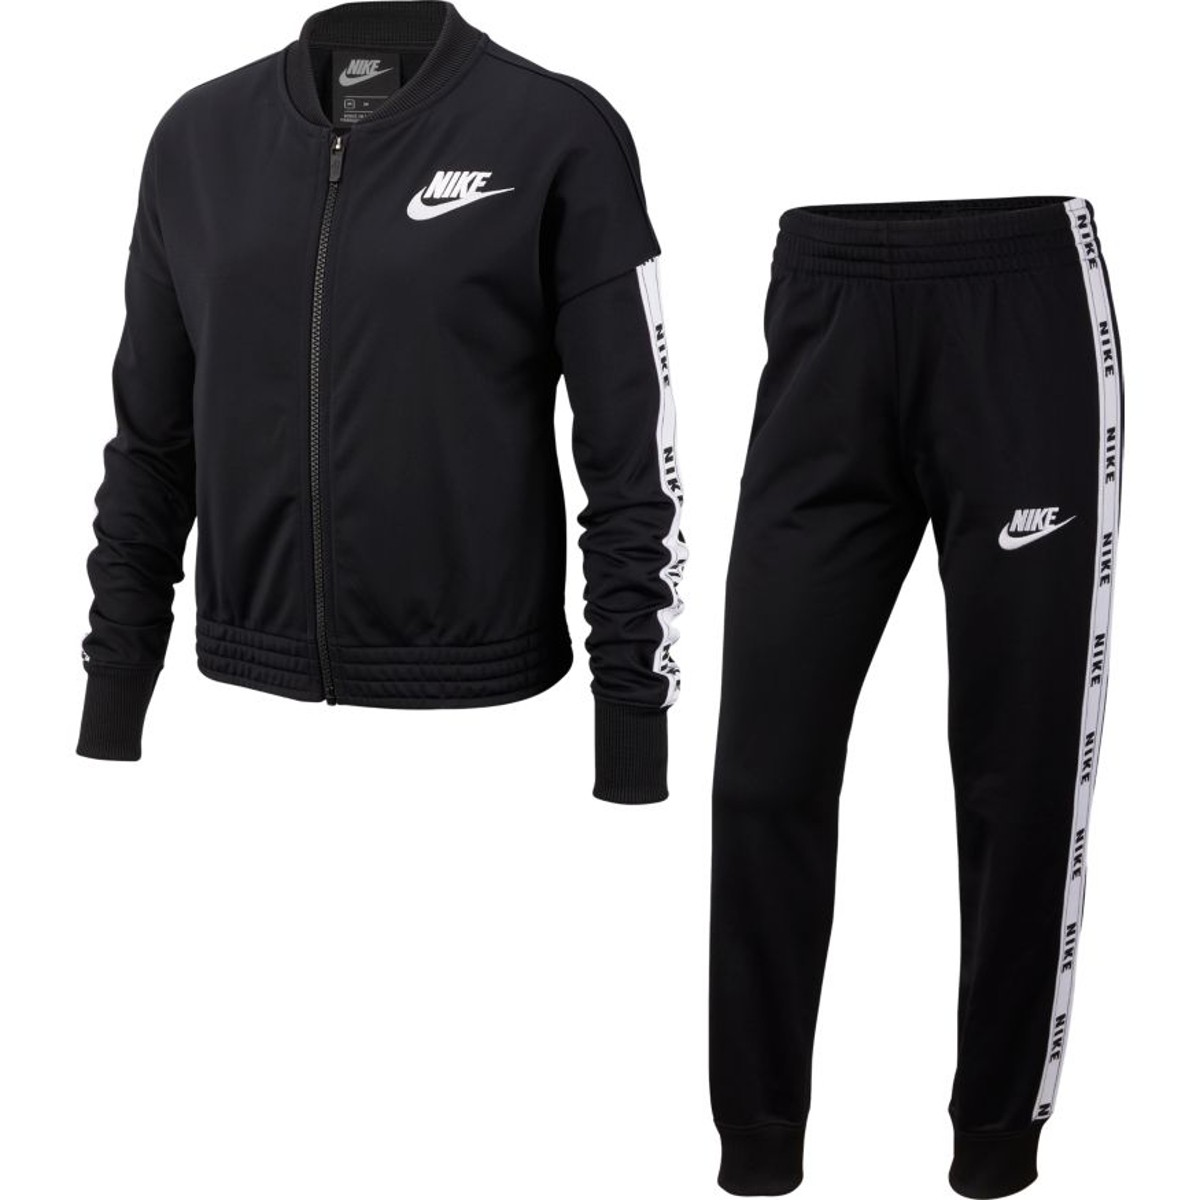 SURVETEMENT NIKE JUNIOR FILLE TRICOT - NIKE